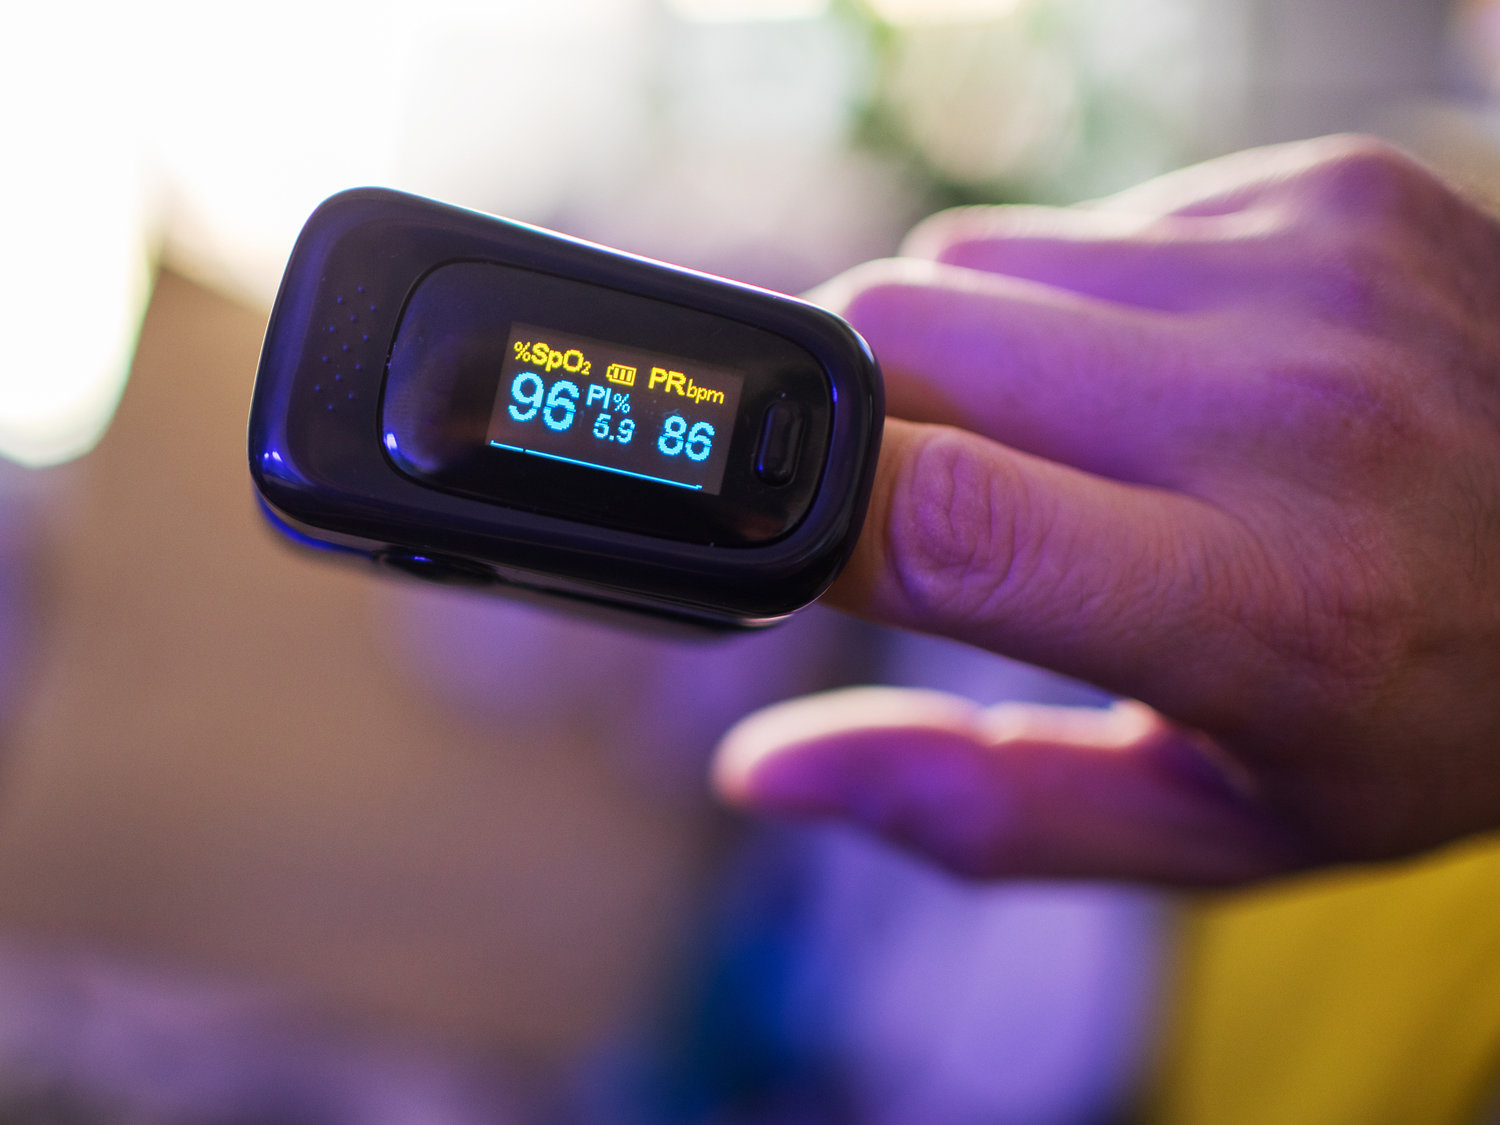 Coronavirus FAQS: What's A Pulse Oximeter? Is It A Good Idea To Buy One?